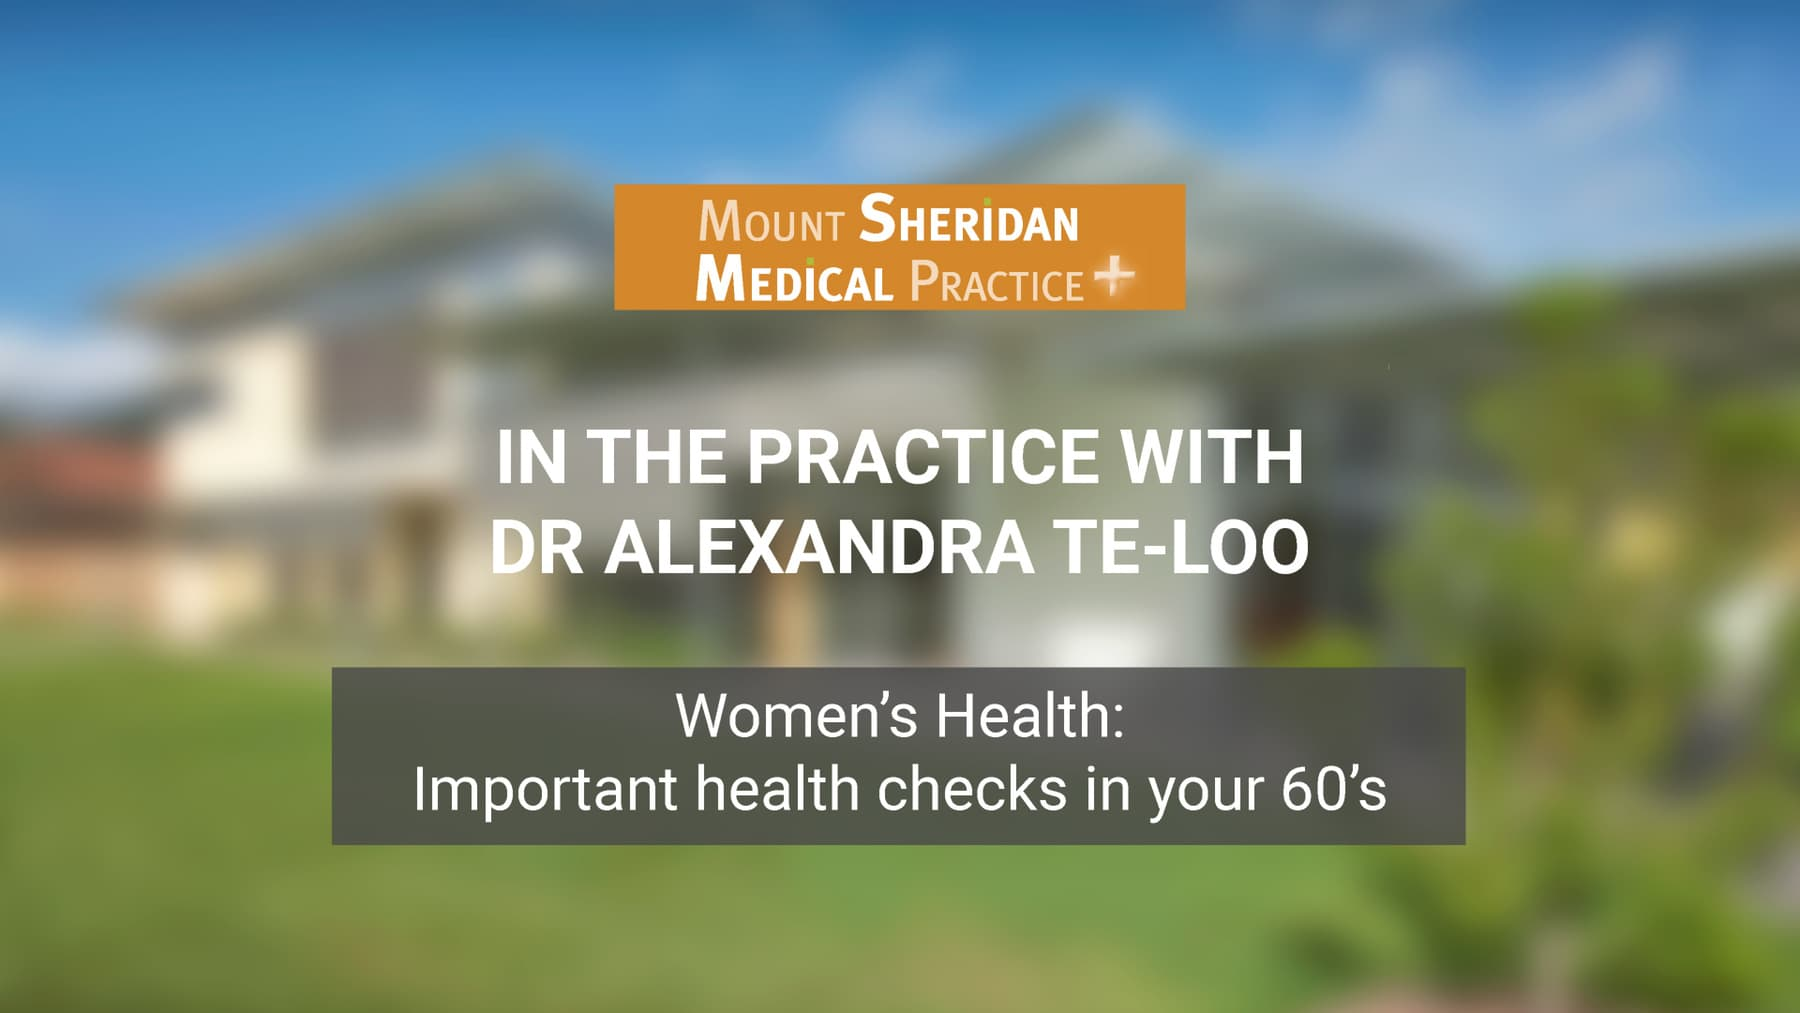 Women's Health: Important health checks in your 60's